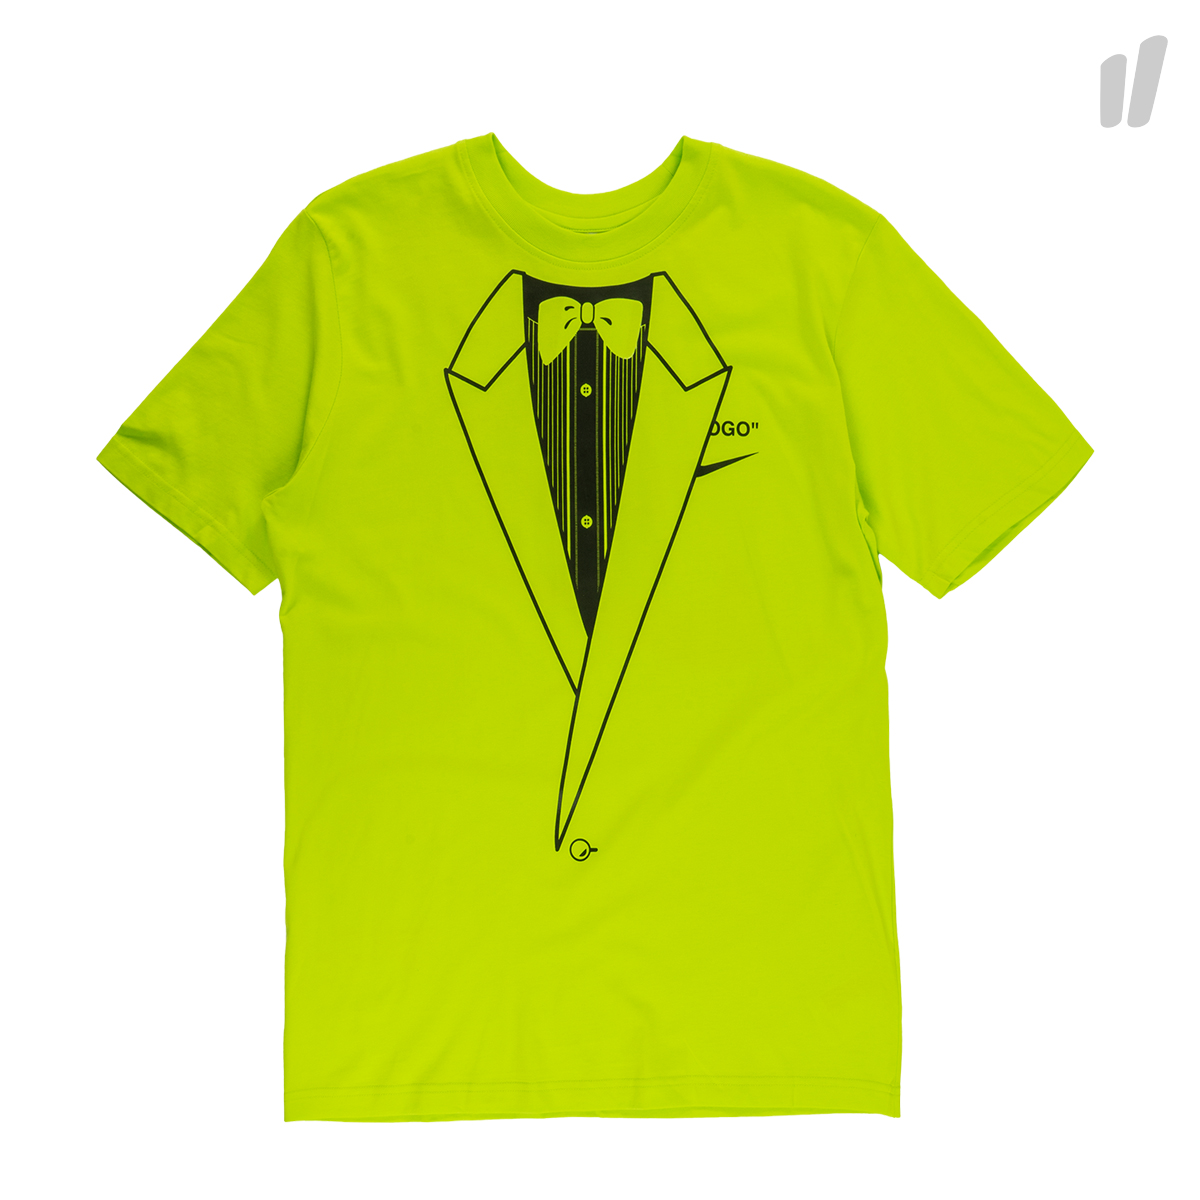 Anguila reunirse víctima  nike x off white nrg a6 tee outlet online f3aa4 3a8a2